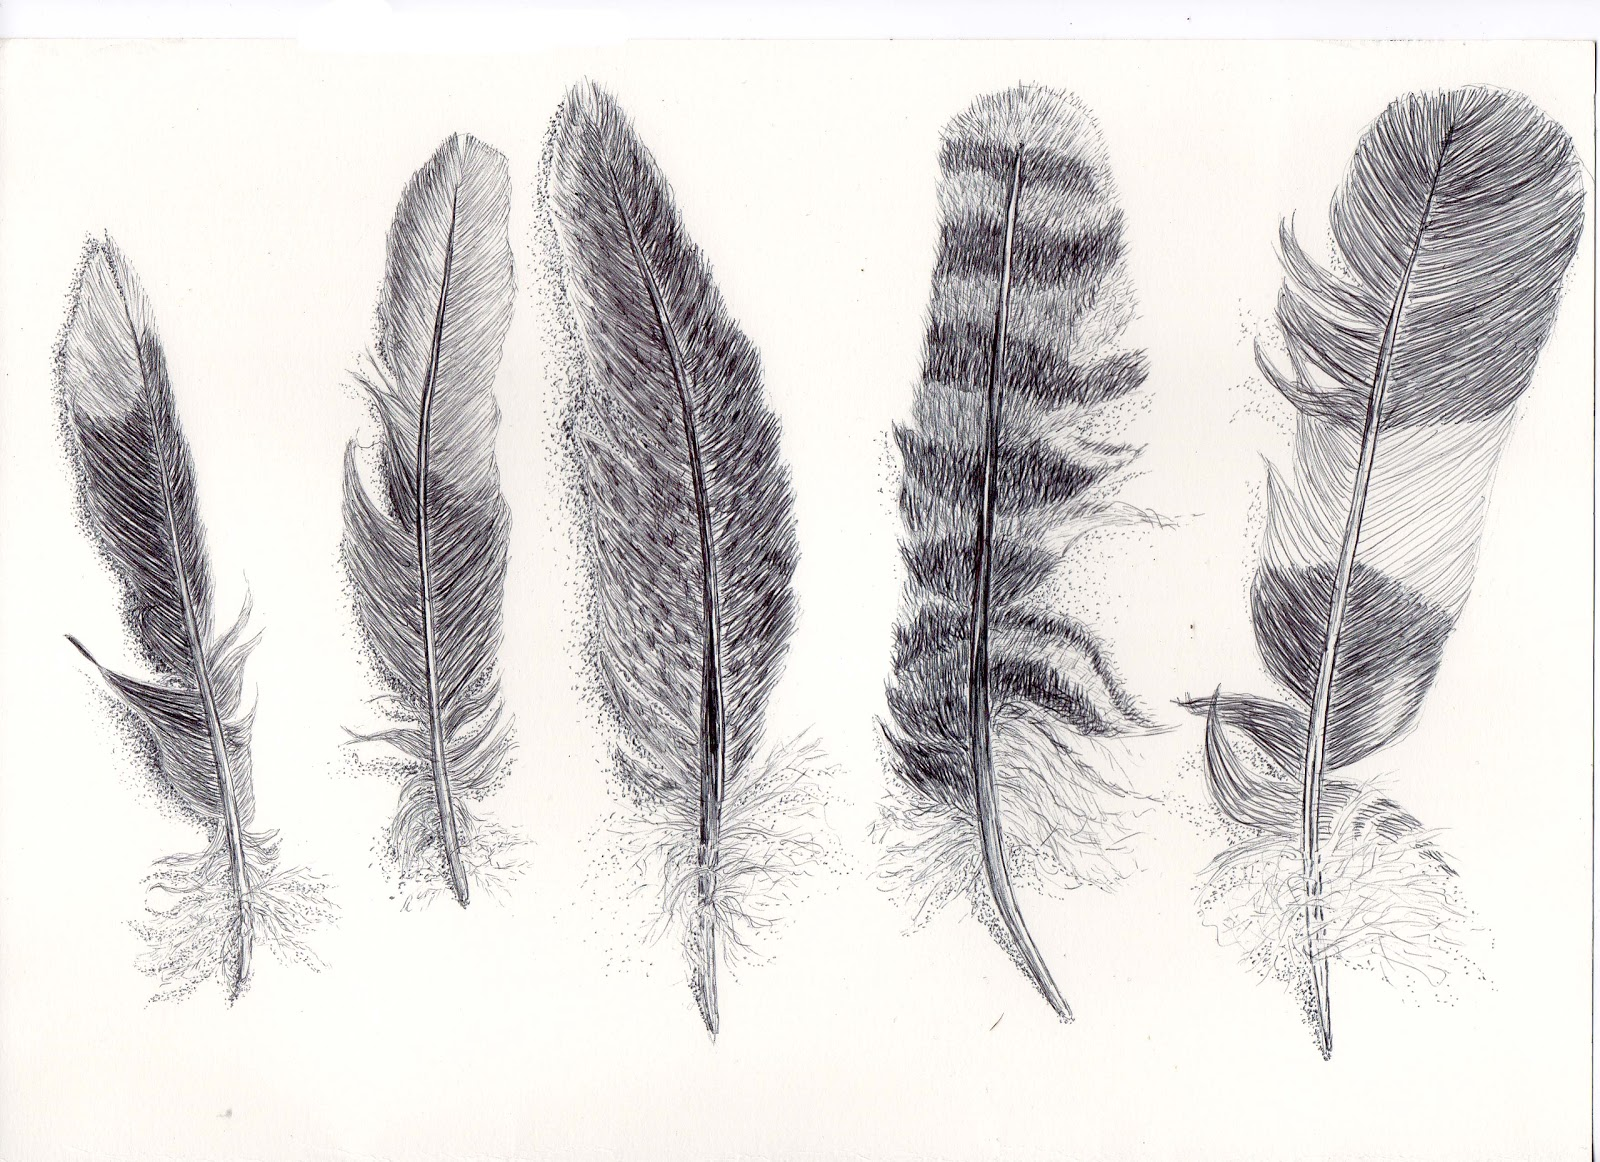 12.drawing 1 - detailed feather drawing